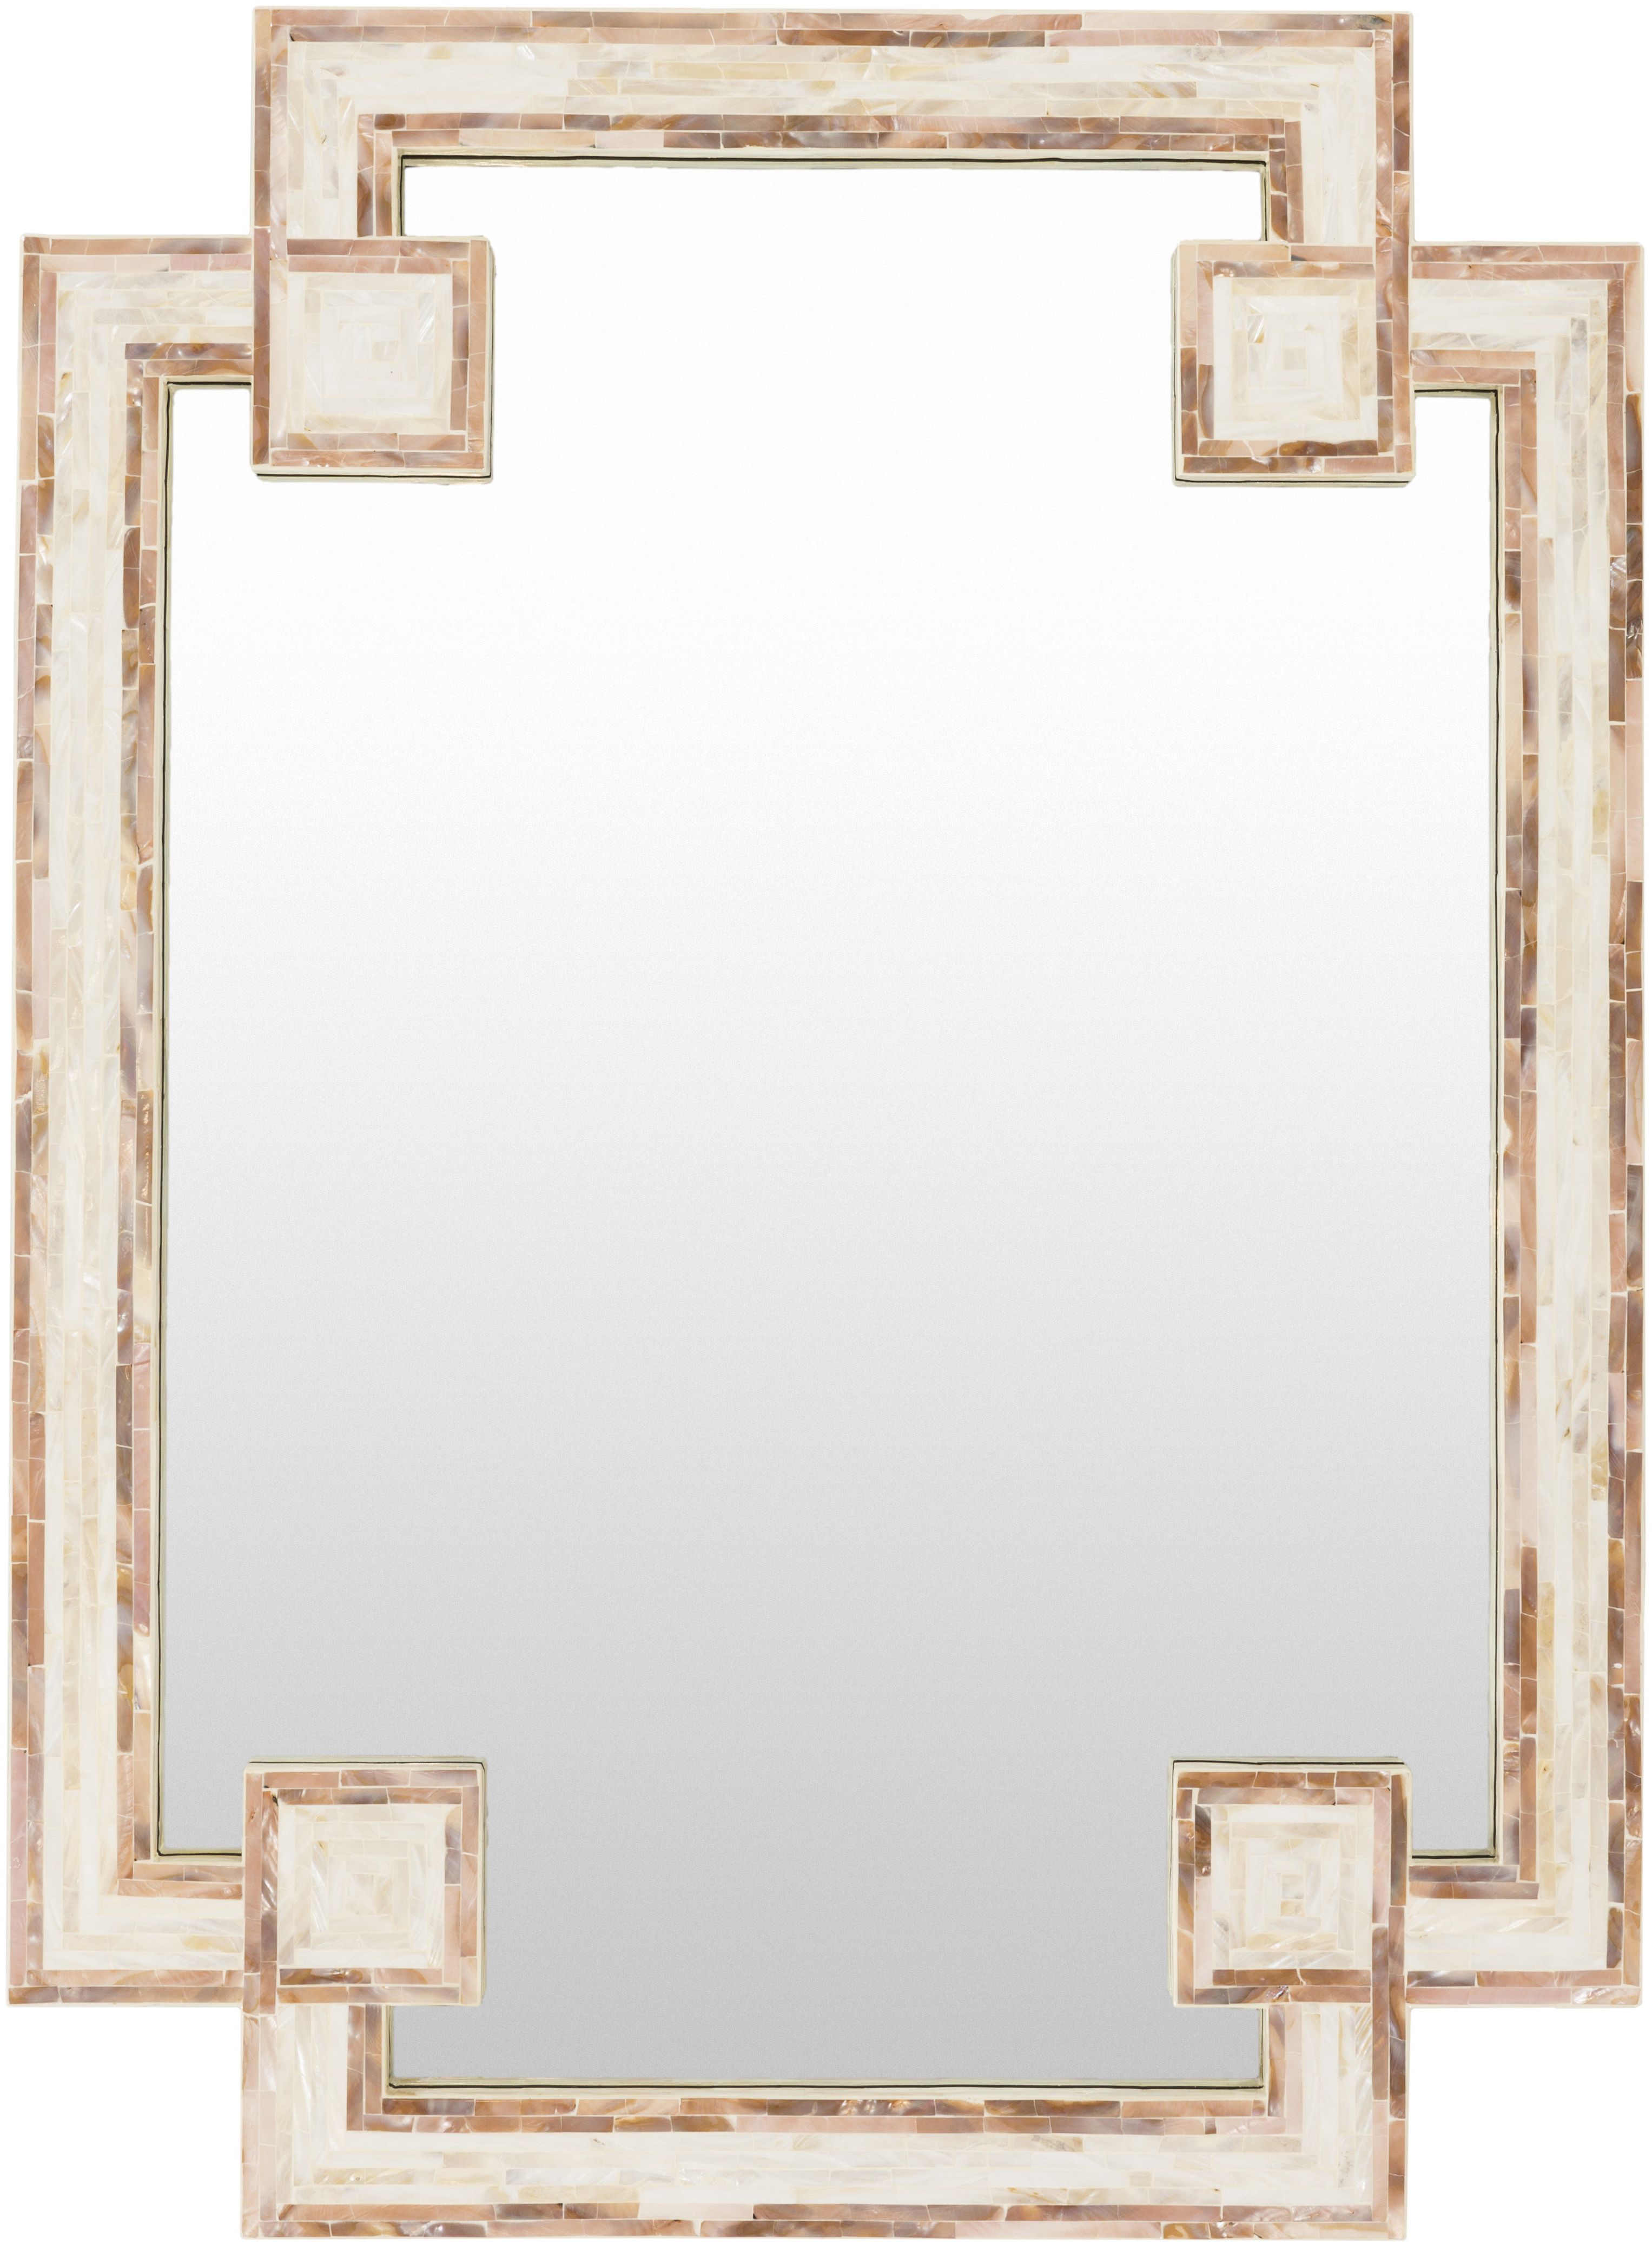 Latrell Modern & Contemporary Wall Mirror Pertaining To Popular Astrid Modern & Contemporary Accent Mirrors (Gallery 8 of 20)